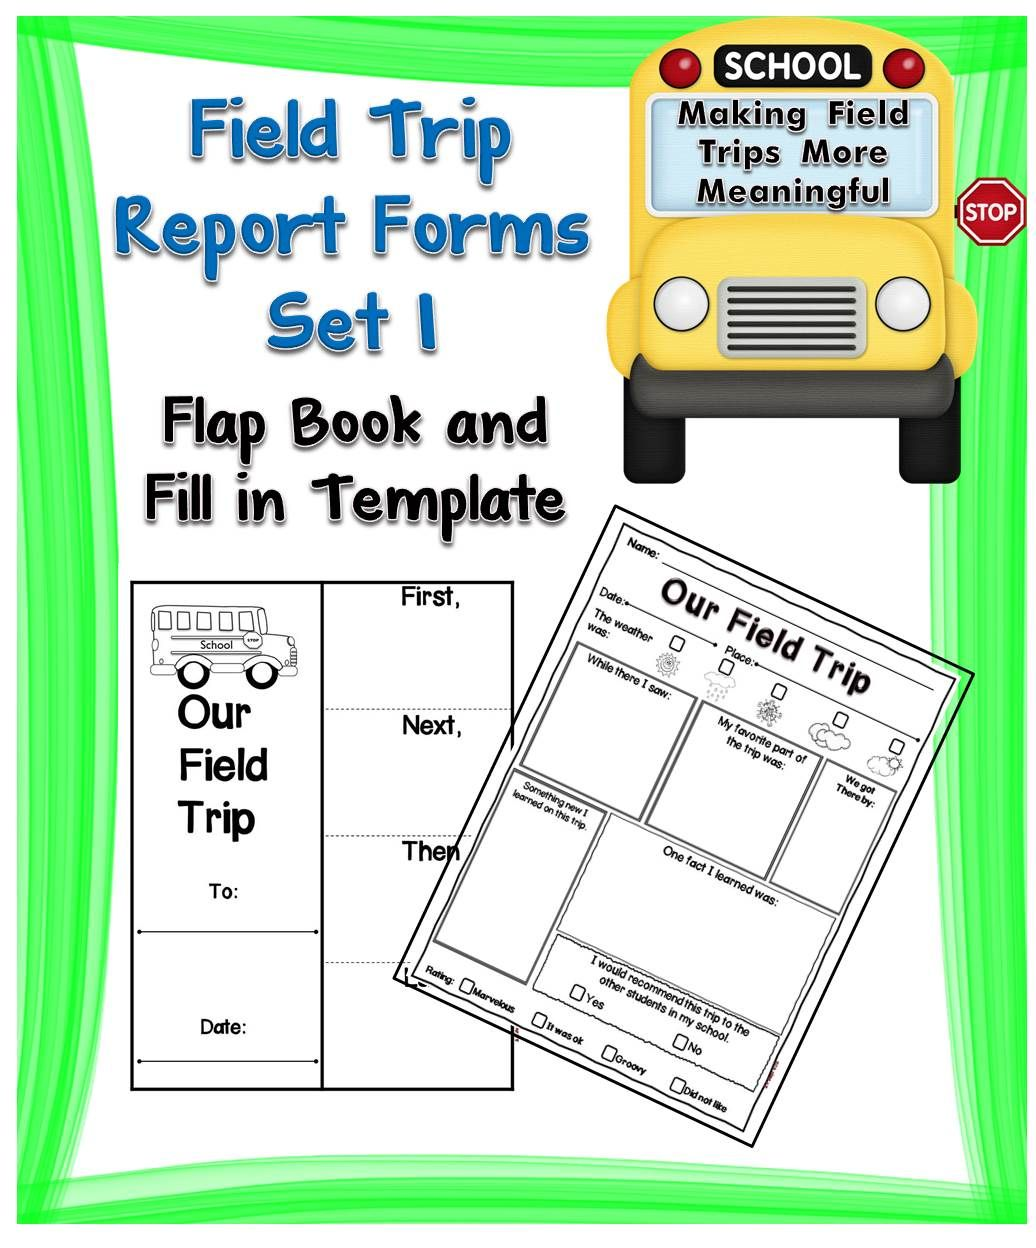 Field Trip Report Forms Set 1